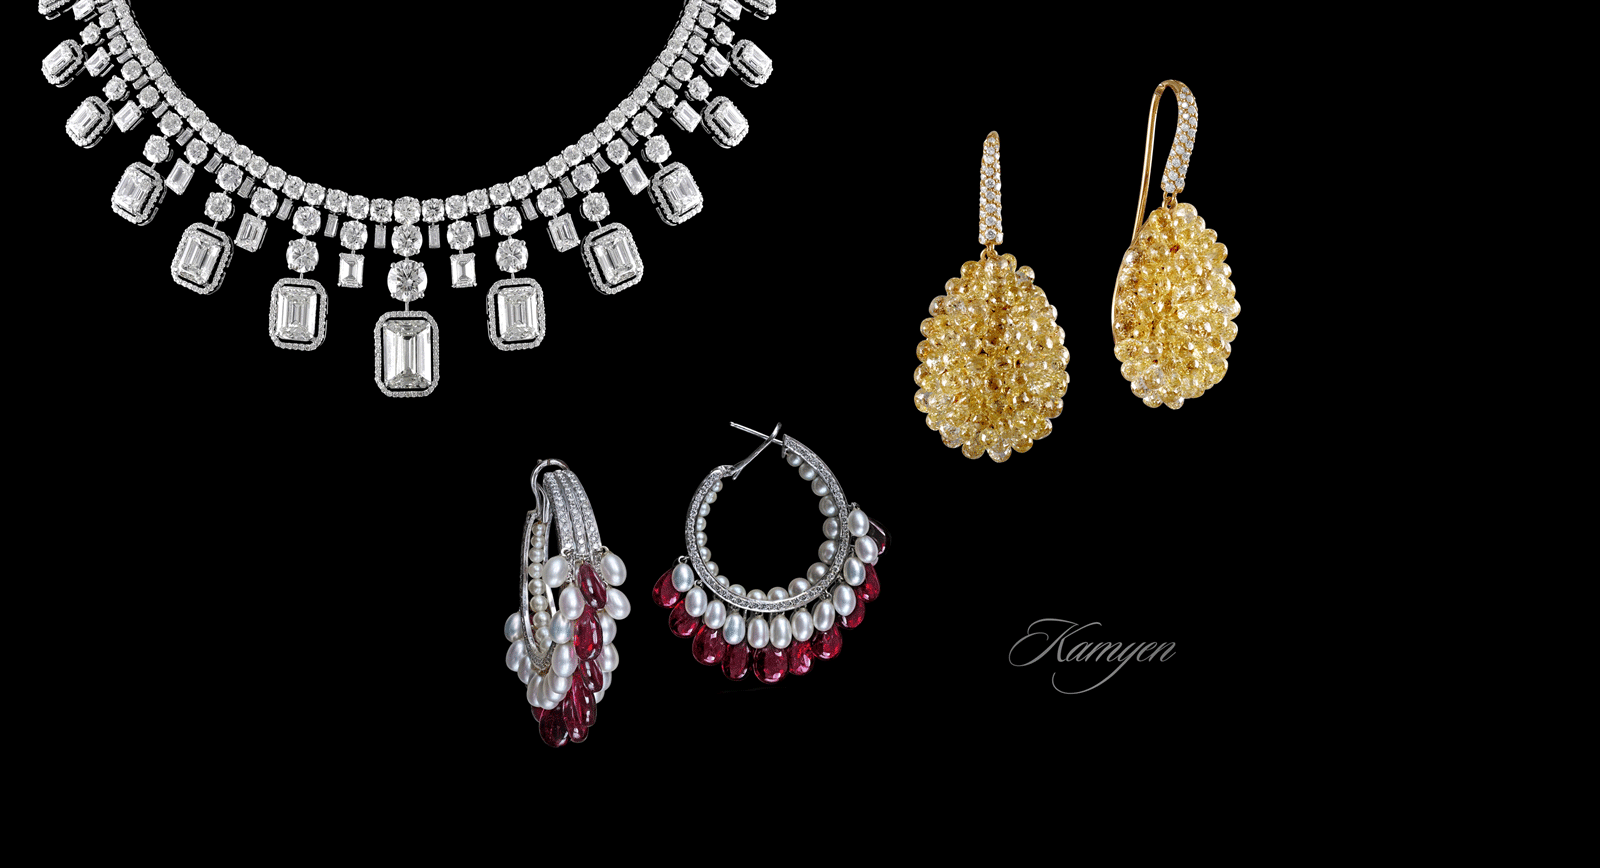 Kamyen: High Jewellery, By Appointment Only